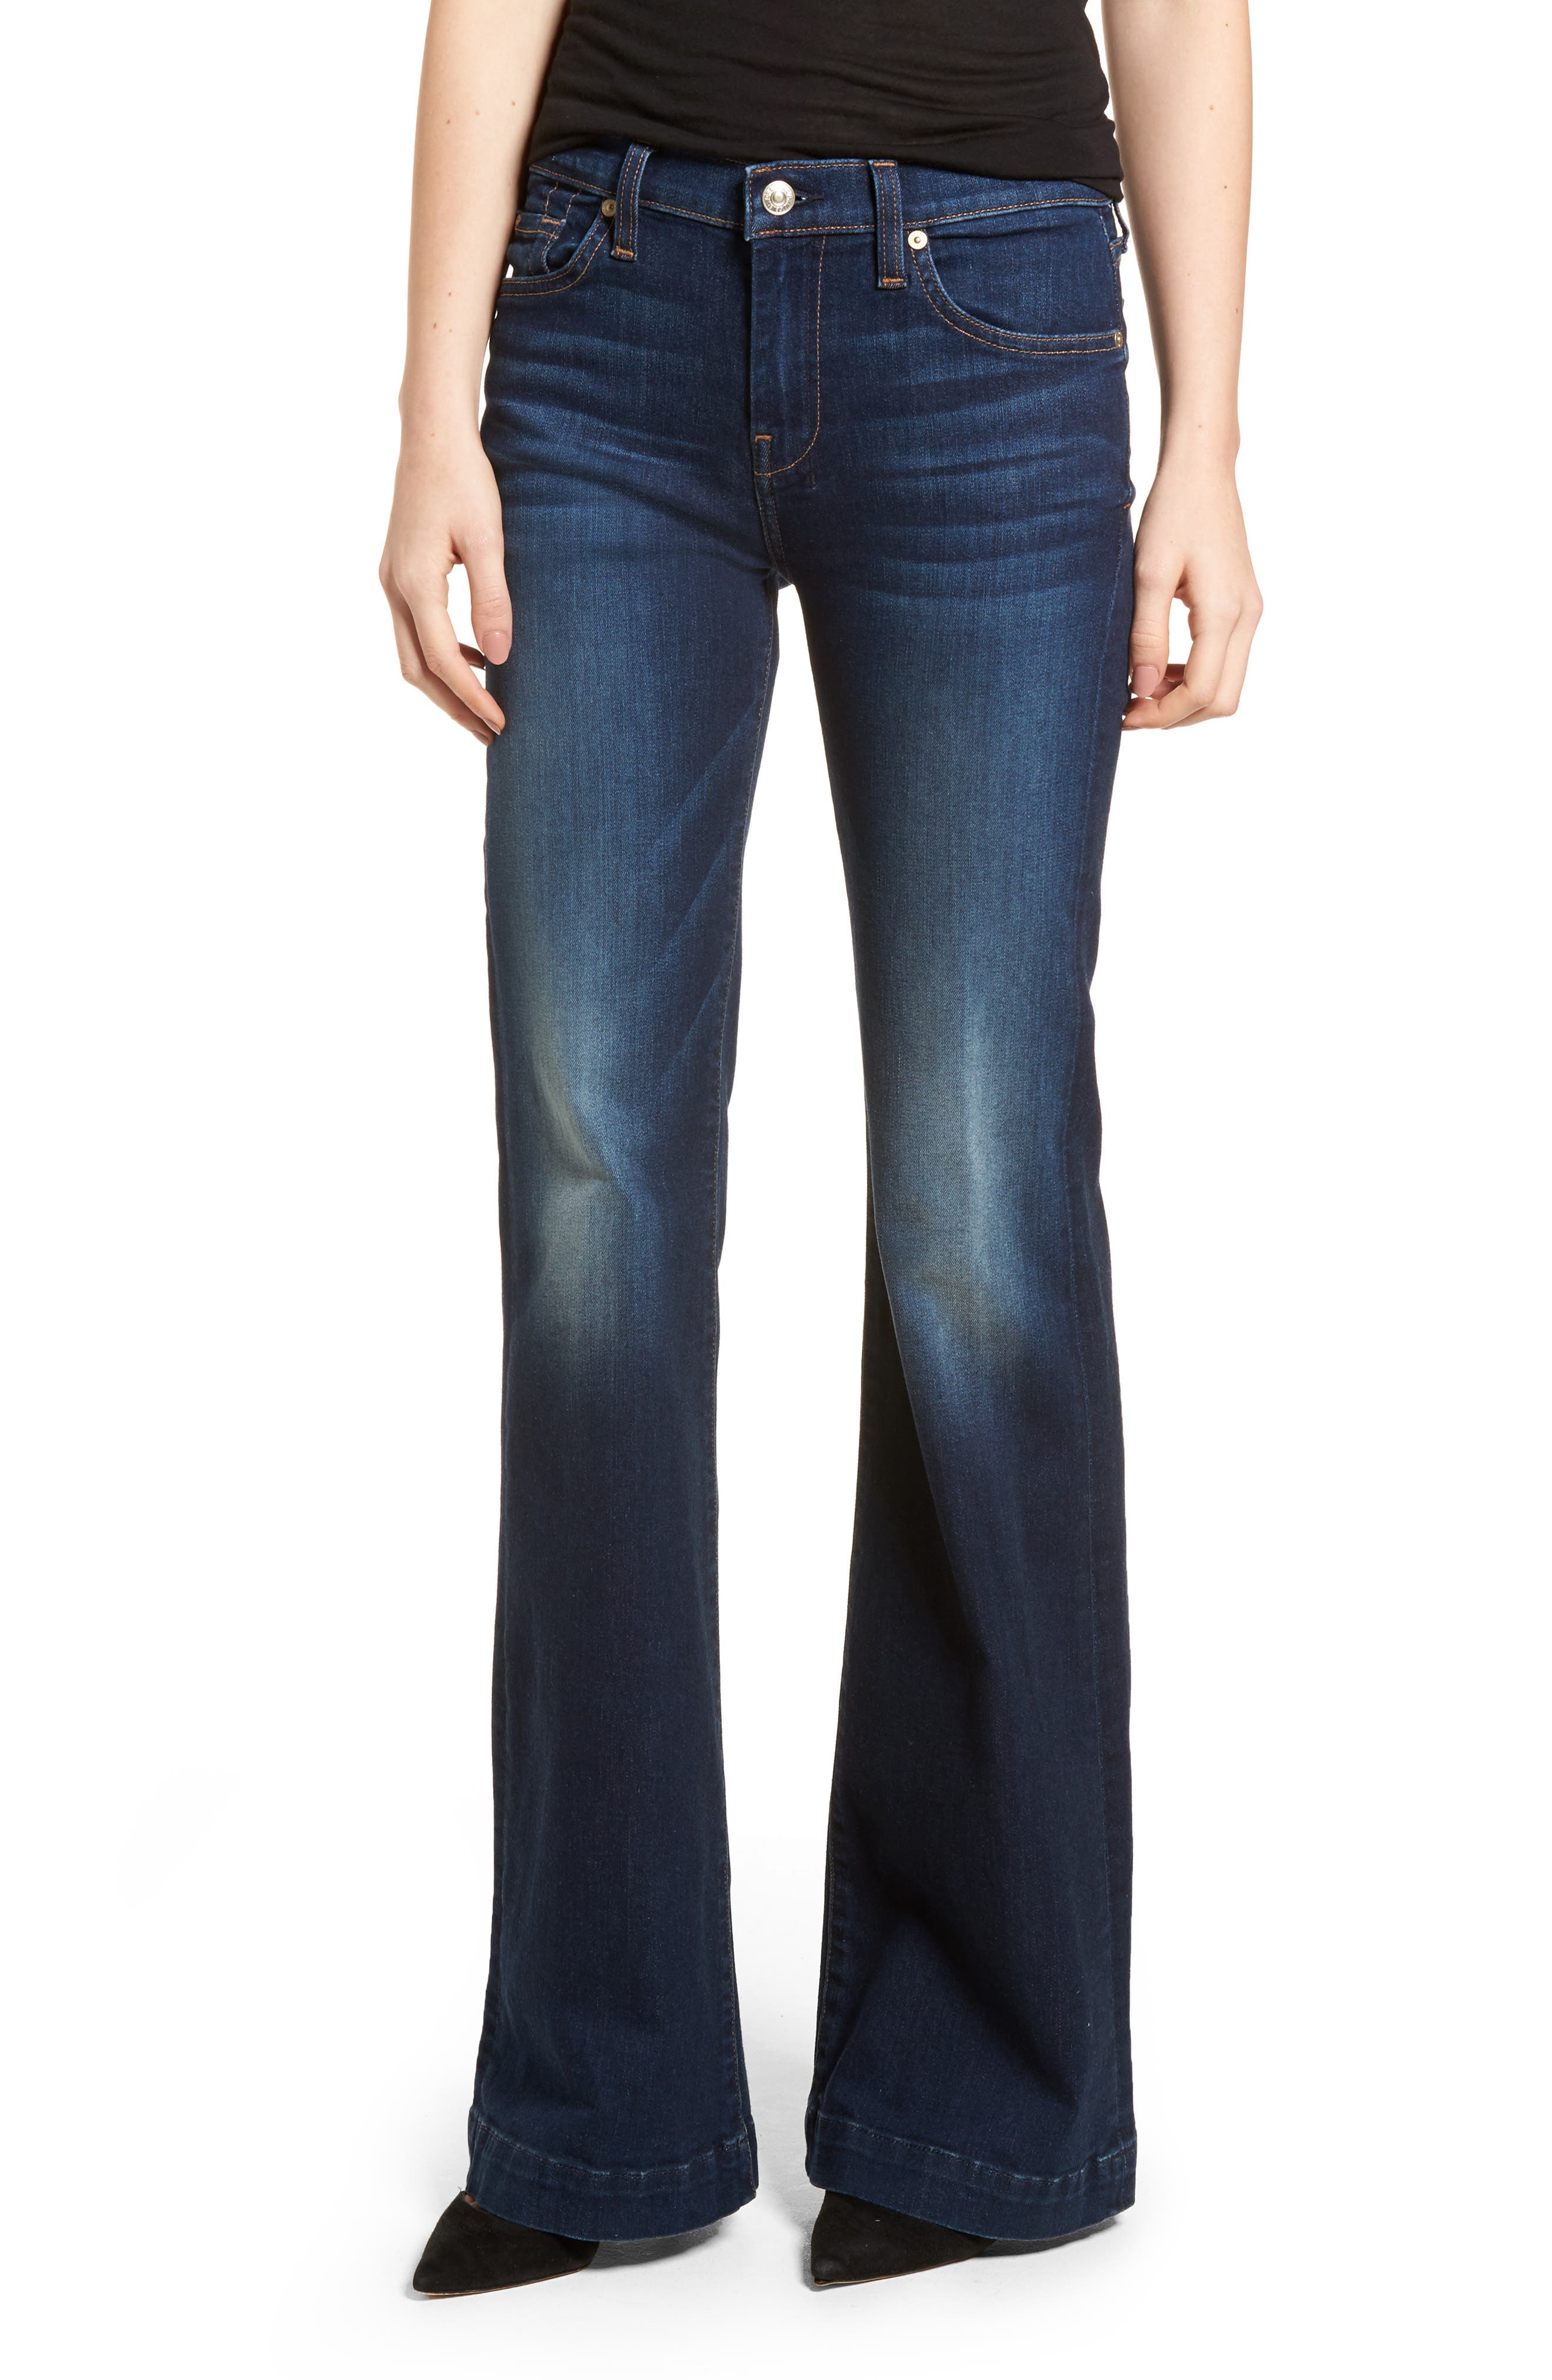 7 For All Mankind Woman Frayed High-rise Kick-flare Jeans Ecru Size 24 7 For All Mankind Clearance Shopping Online Amazon Cheap Price Best Seller Cheap Online sfKBZ